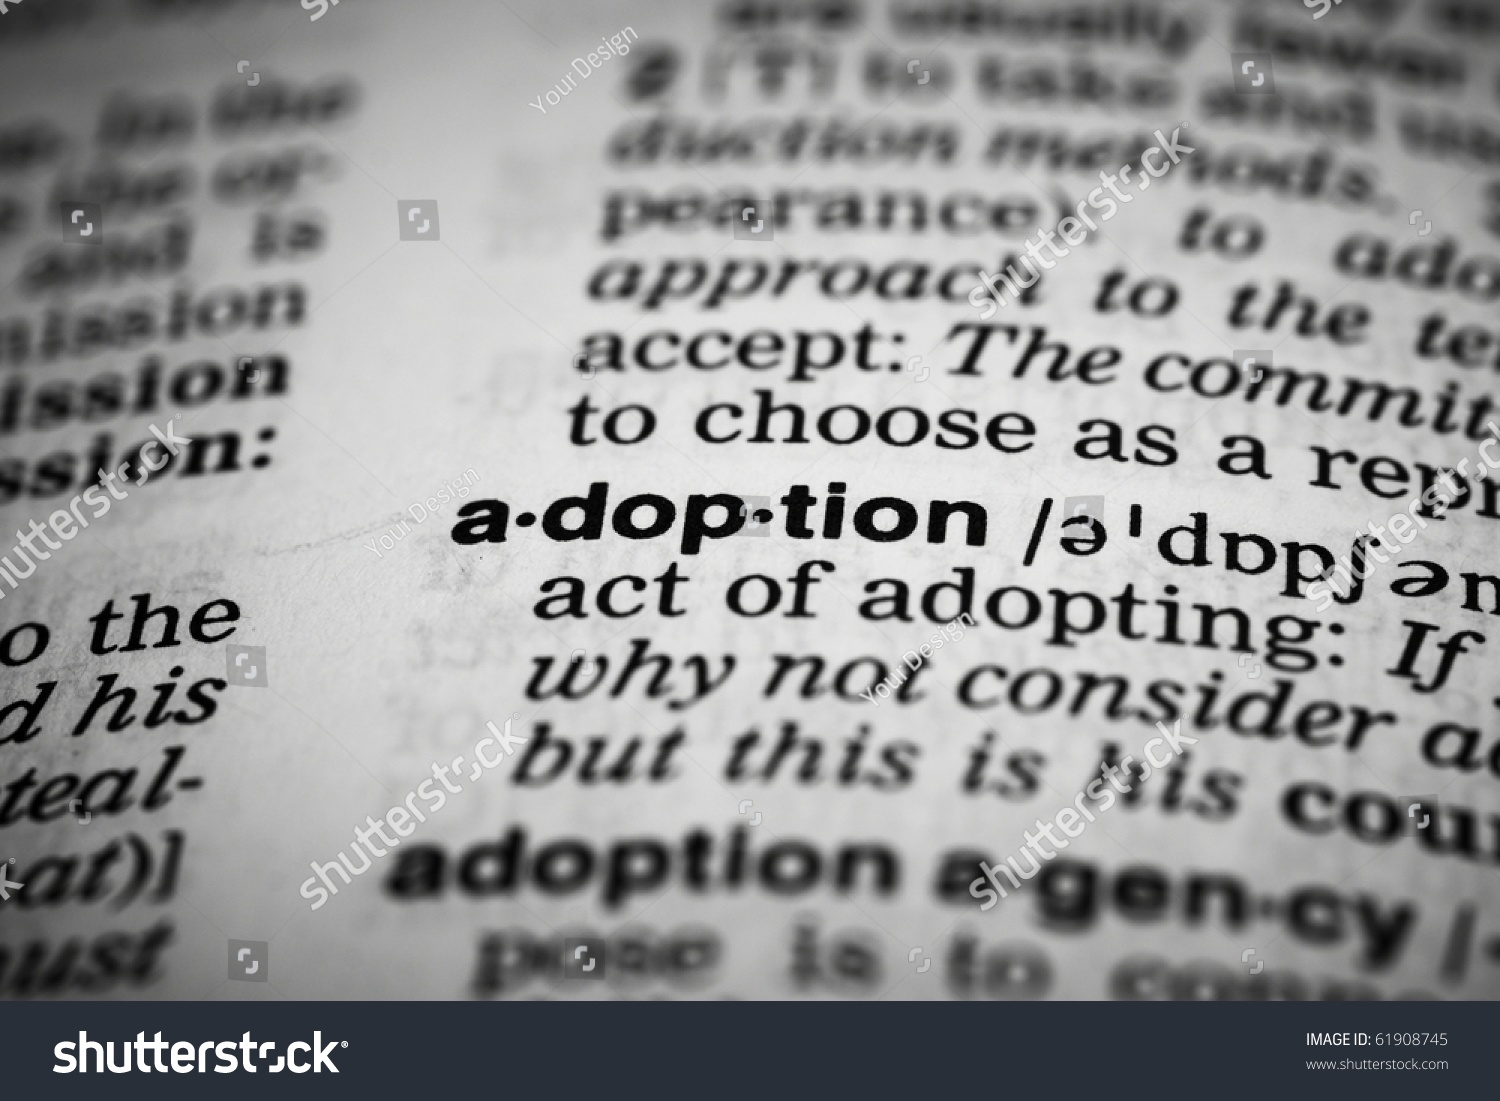 adoption definition dictionary stock photo (edit now) 61908745